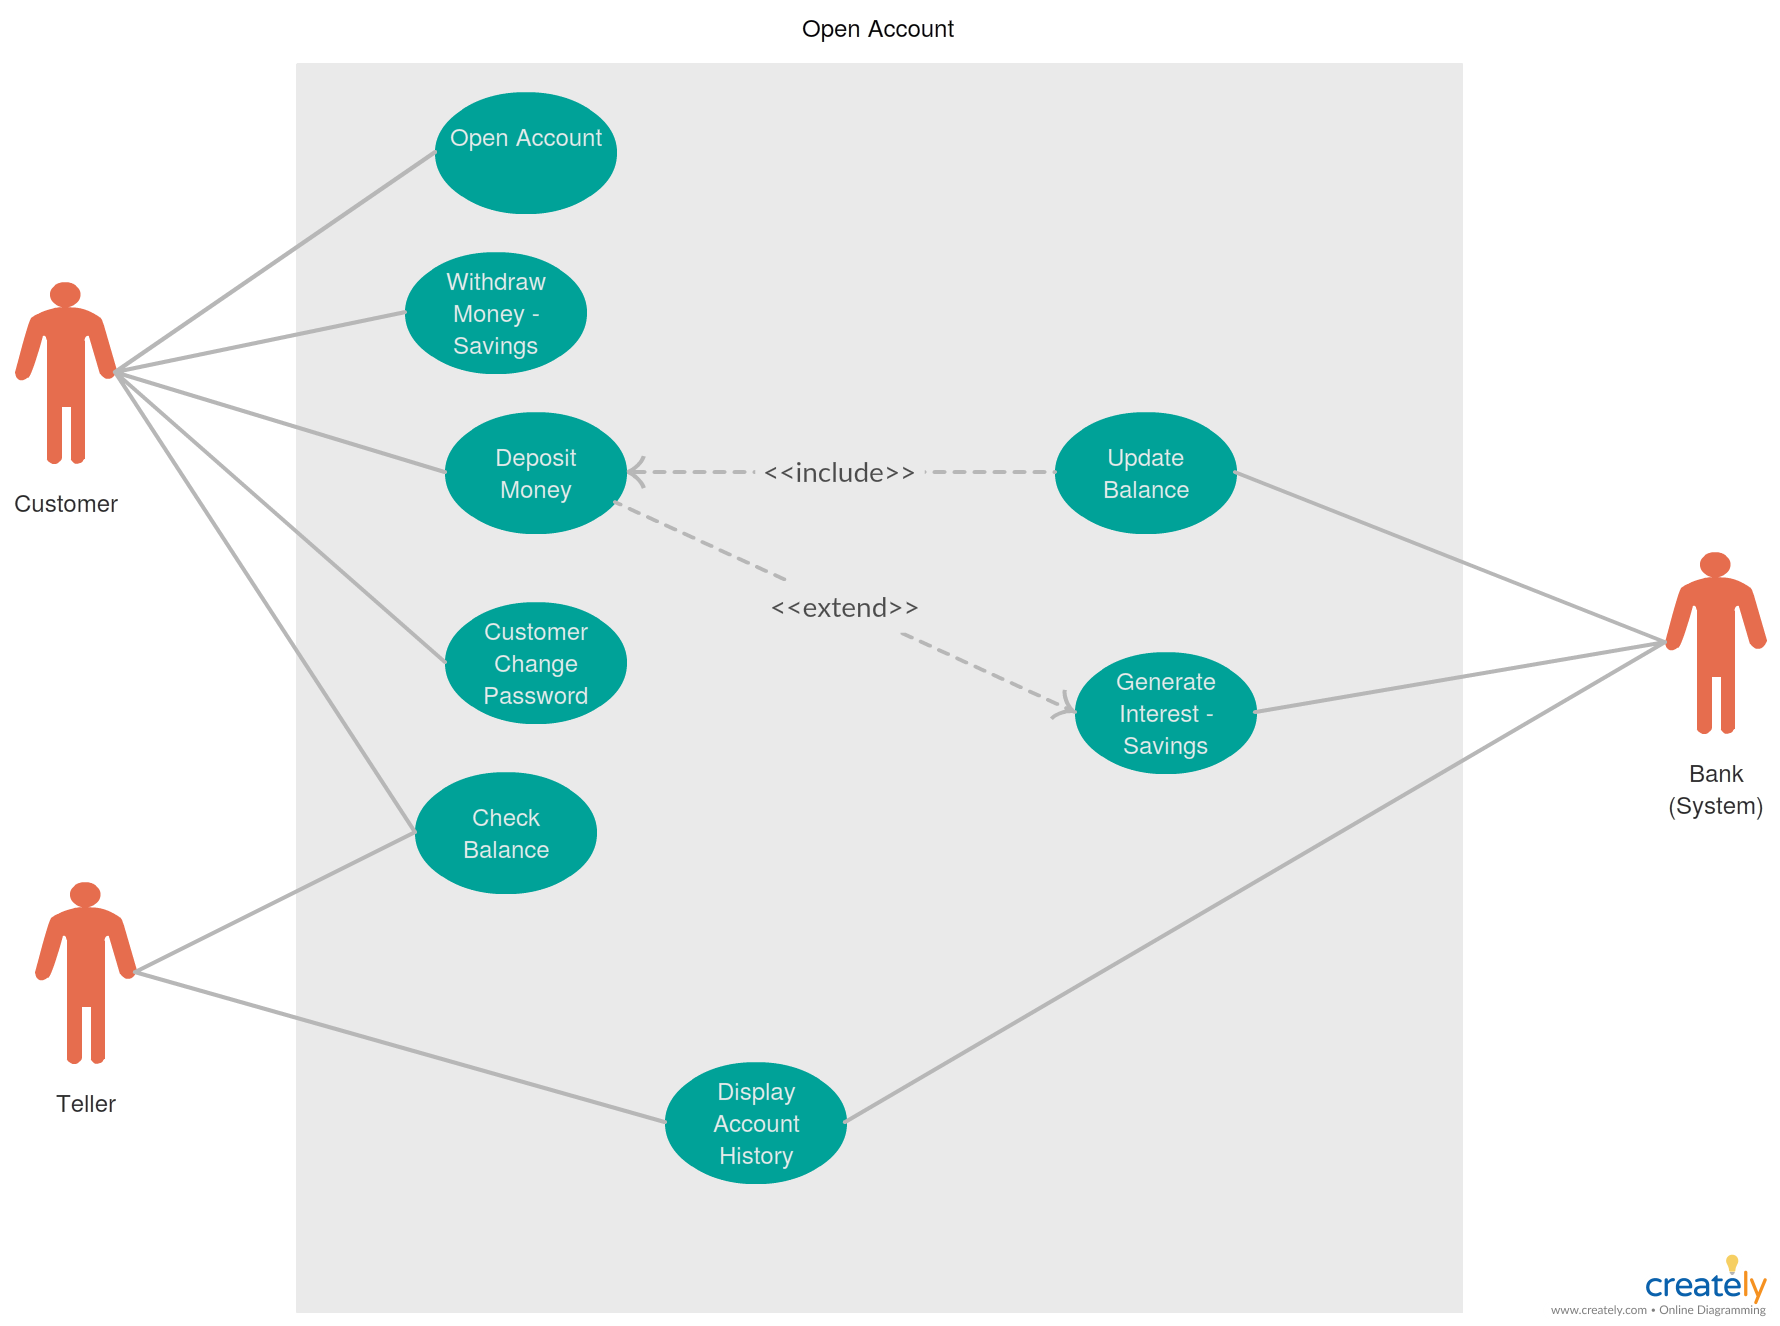 medium resolution of use case diagram for banking system use case diagram for an opening bank account can be easily drawn using creately use case diagram maker